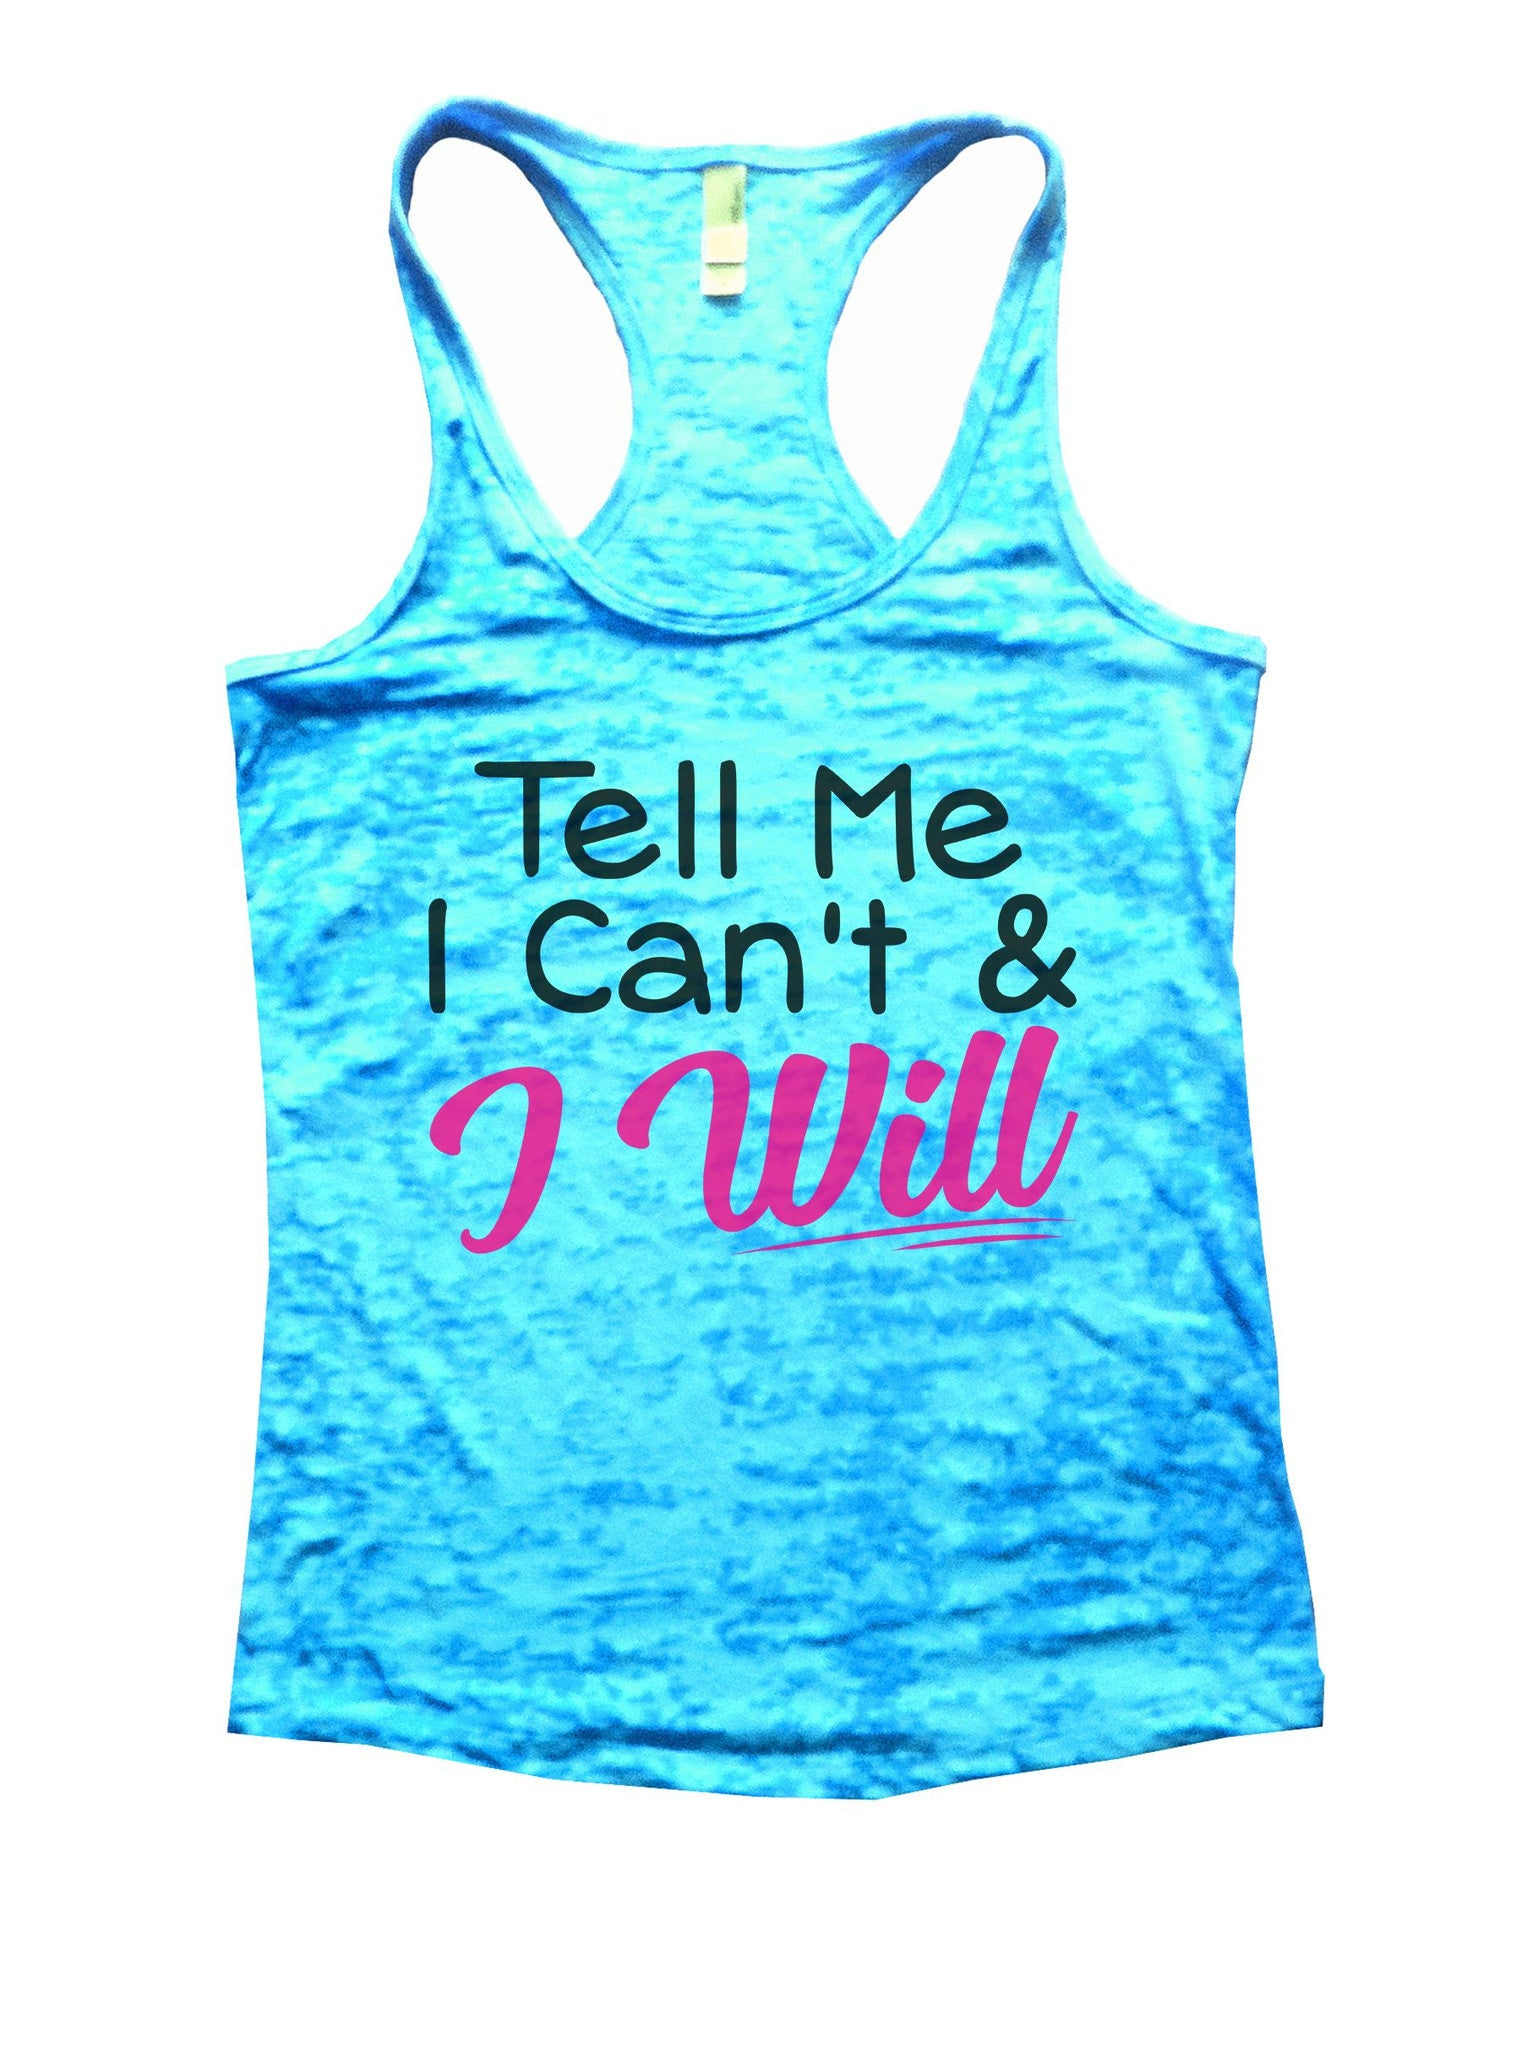 Tell Me I Can't & I Will Burnout Tank Top By BurnoutTankTops.com - 1071 - Funny Shirts Tank Tops Burnouts and Triblends  - 4